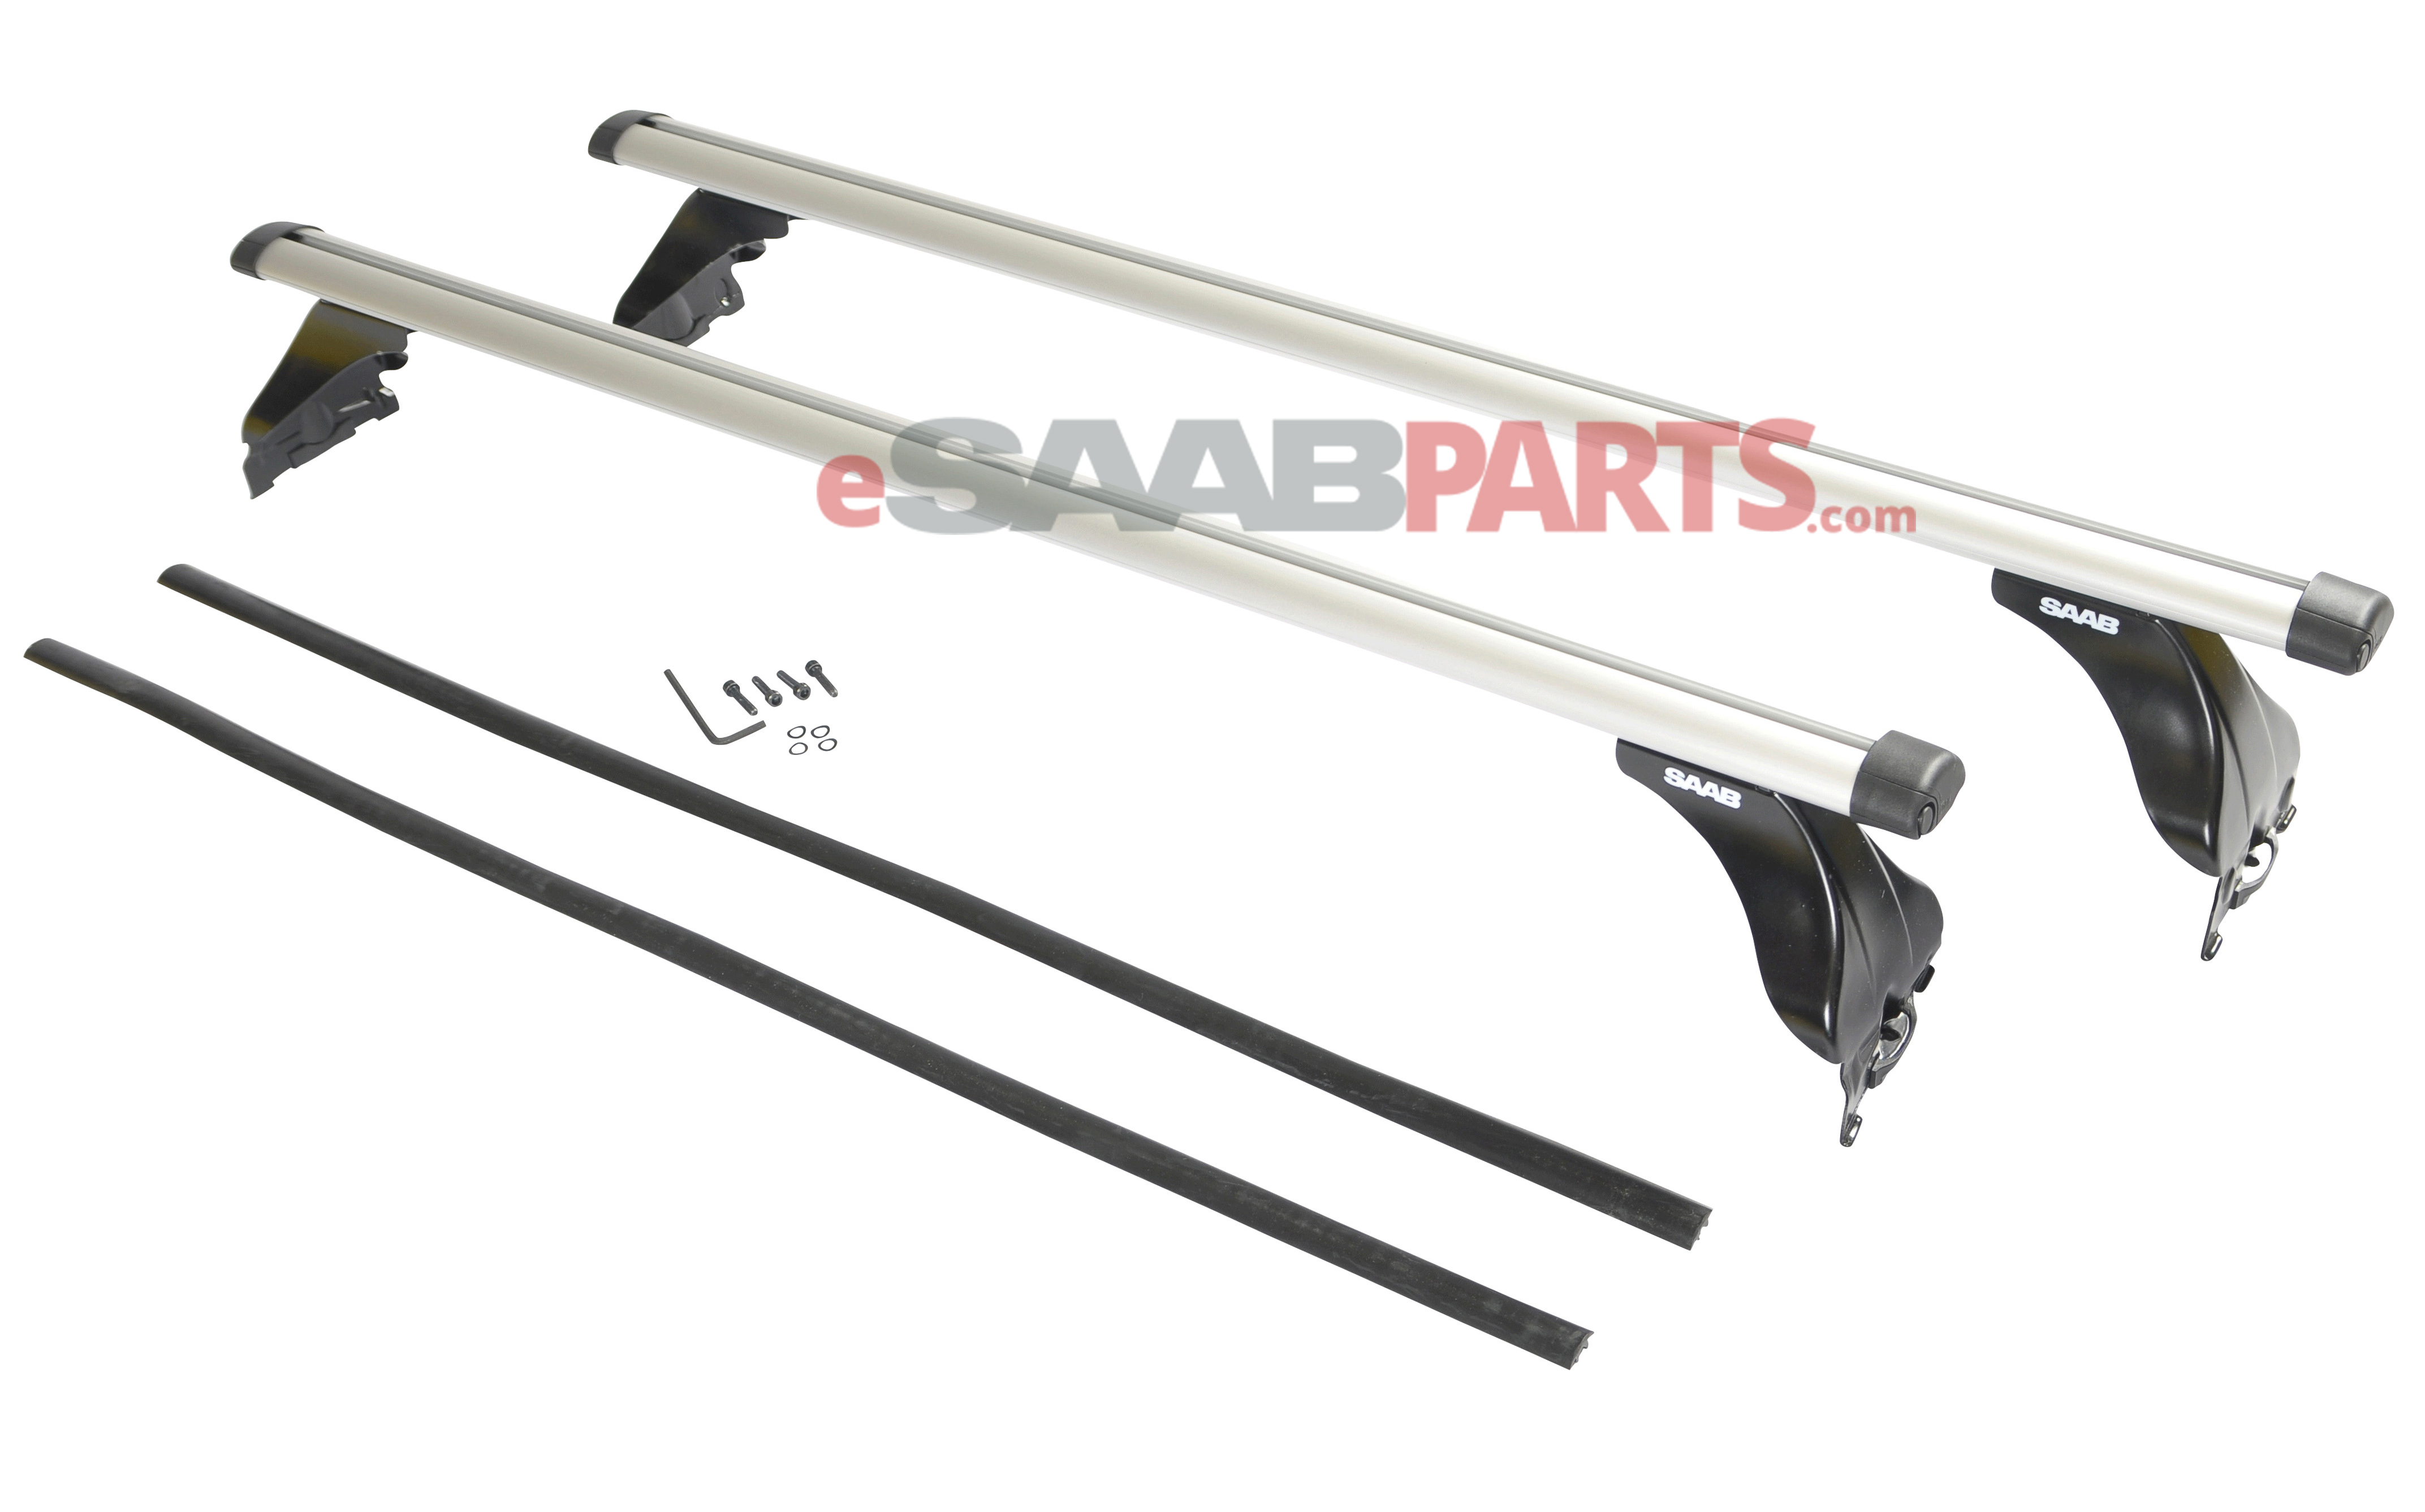 11588717 additionally Lesjofors 8077805 Hood Lift Support additionally 93167061 additionally 93178718 furthermore 12767810. on saab 9 3 awd